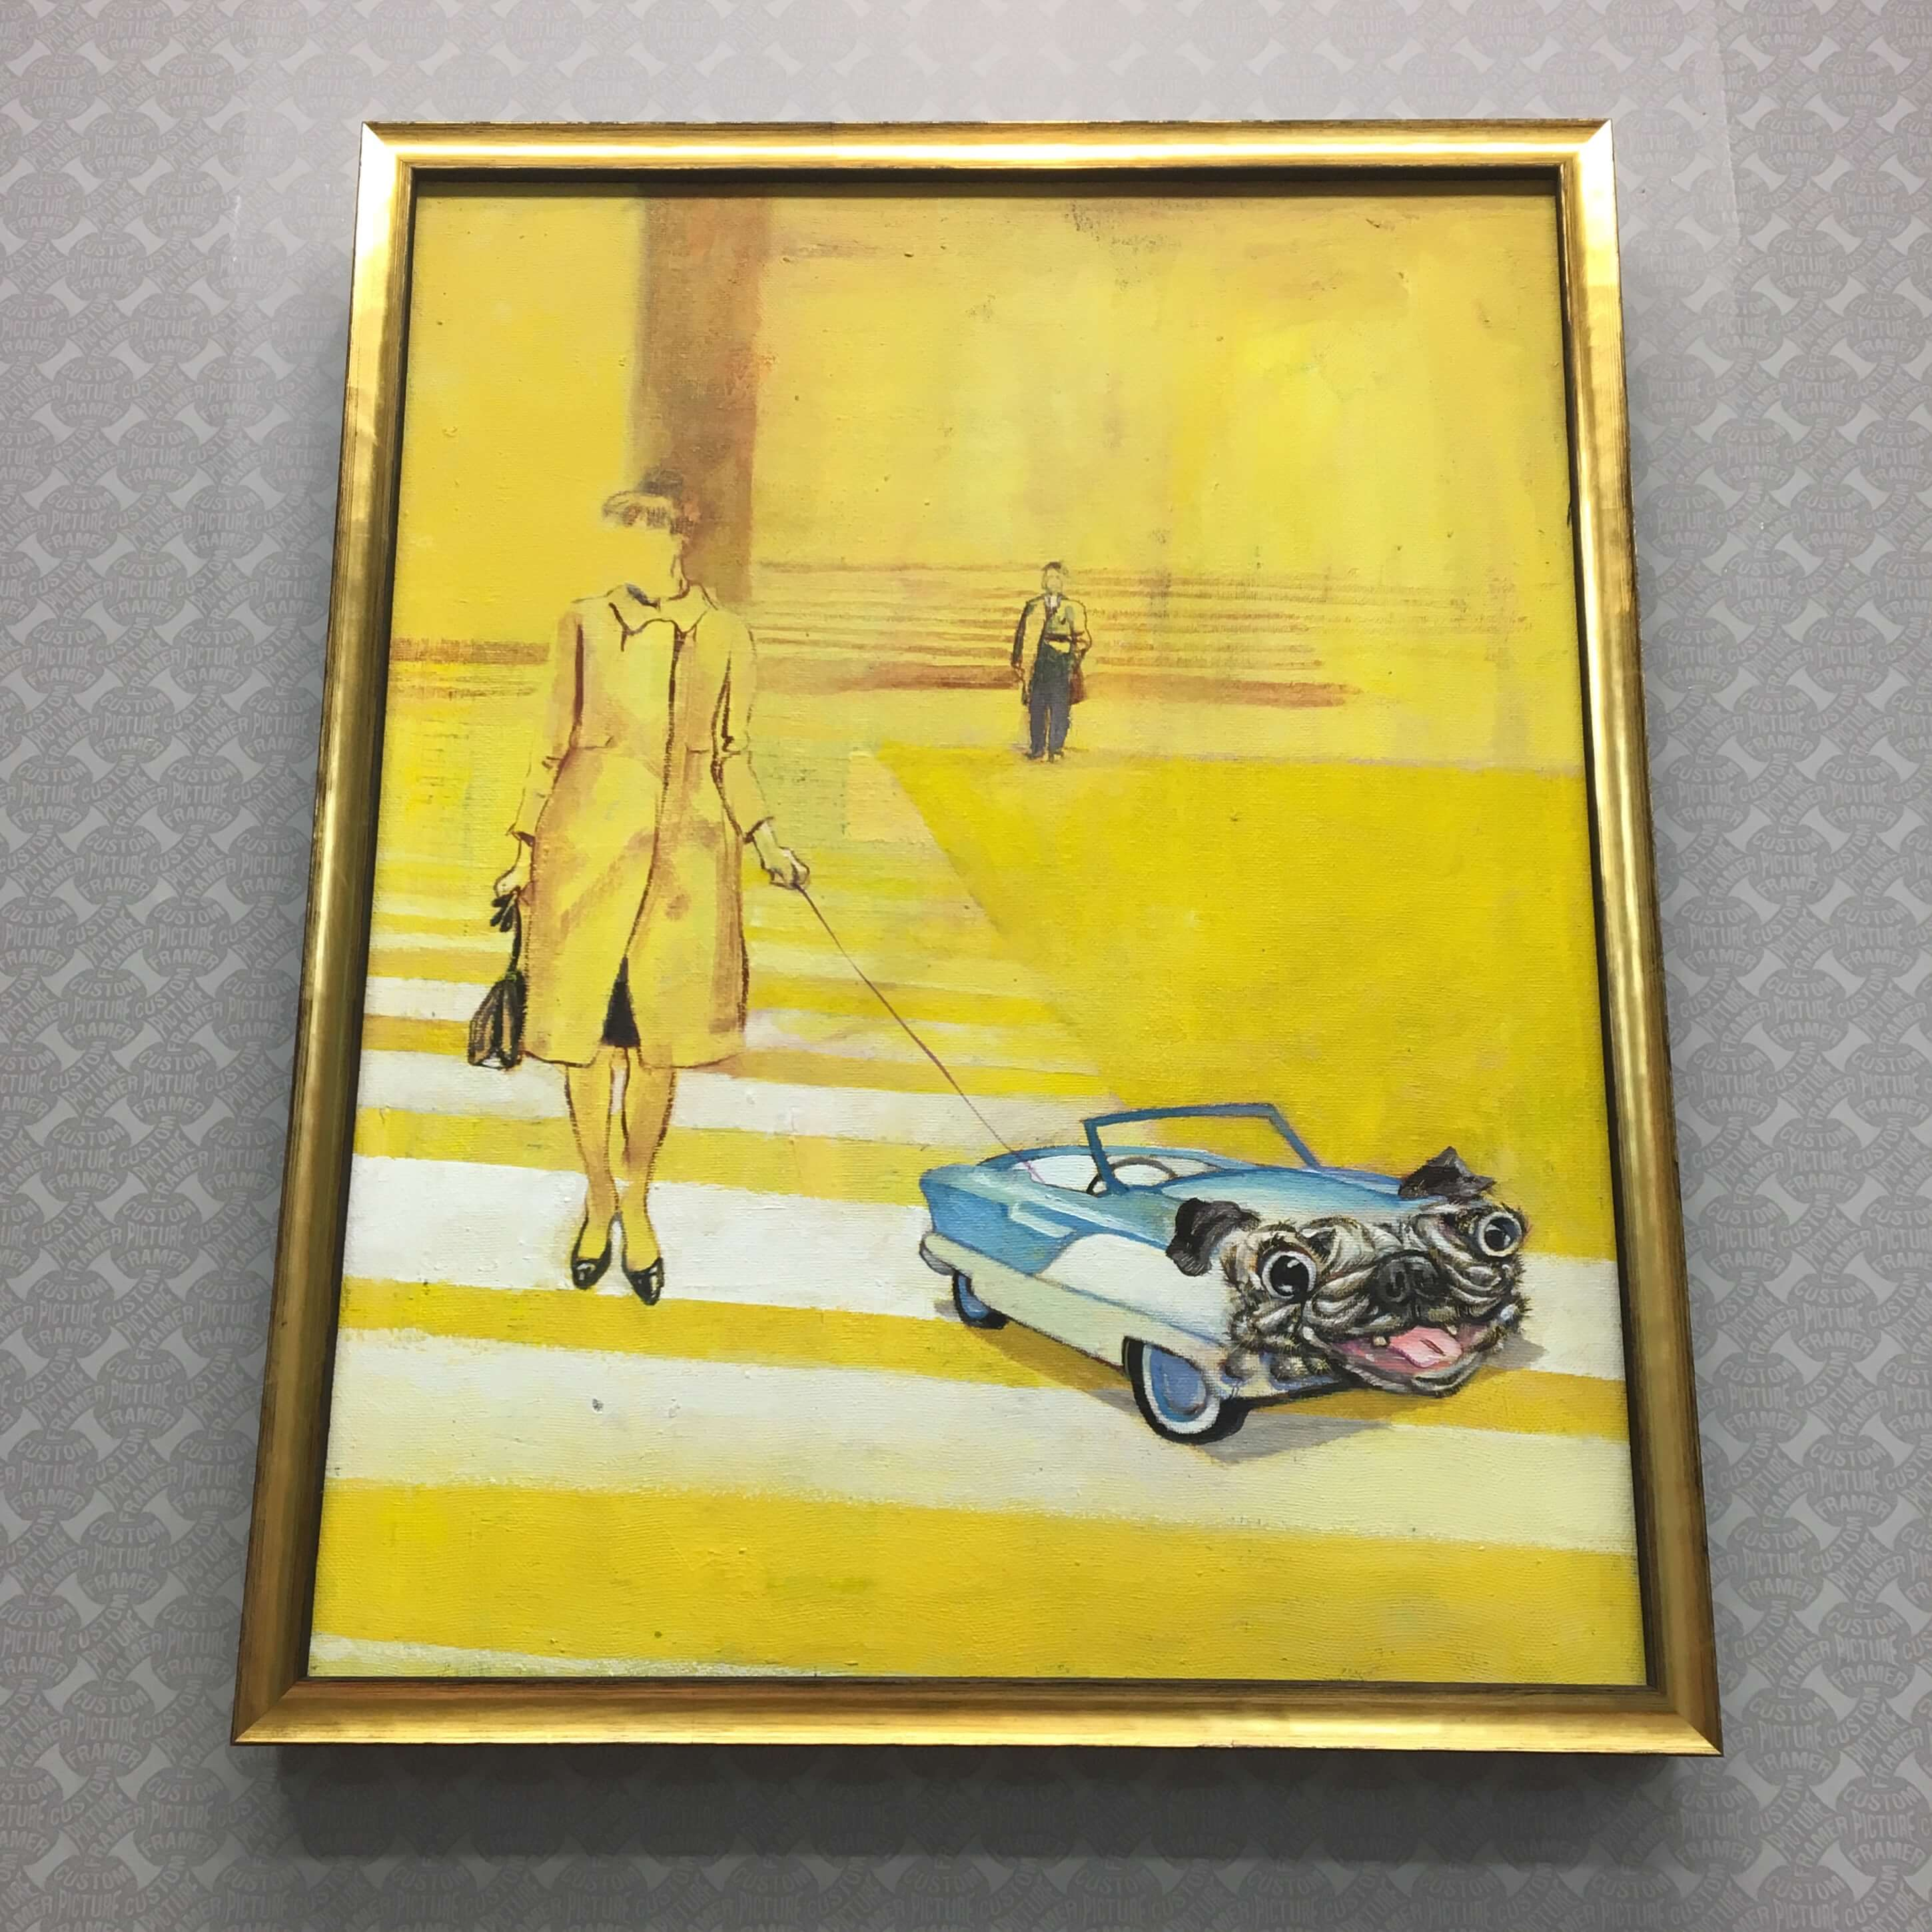 Surreal oil on canvas by Charles Brenna - custom framed in a distressed gold cap moulding. See more custom framing options at our Keswick Village showroom located just north of Philadelphia in Glenside PA ( Pennsylvania ) , 19038 . Custom Picture Framer of Glenside carries several thousand frame styles, prints, maps, limited editions, mirrors, and more!